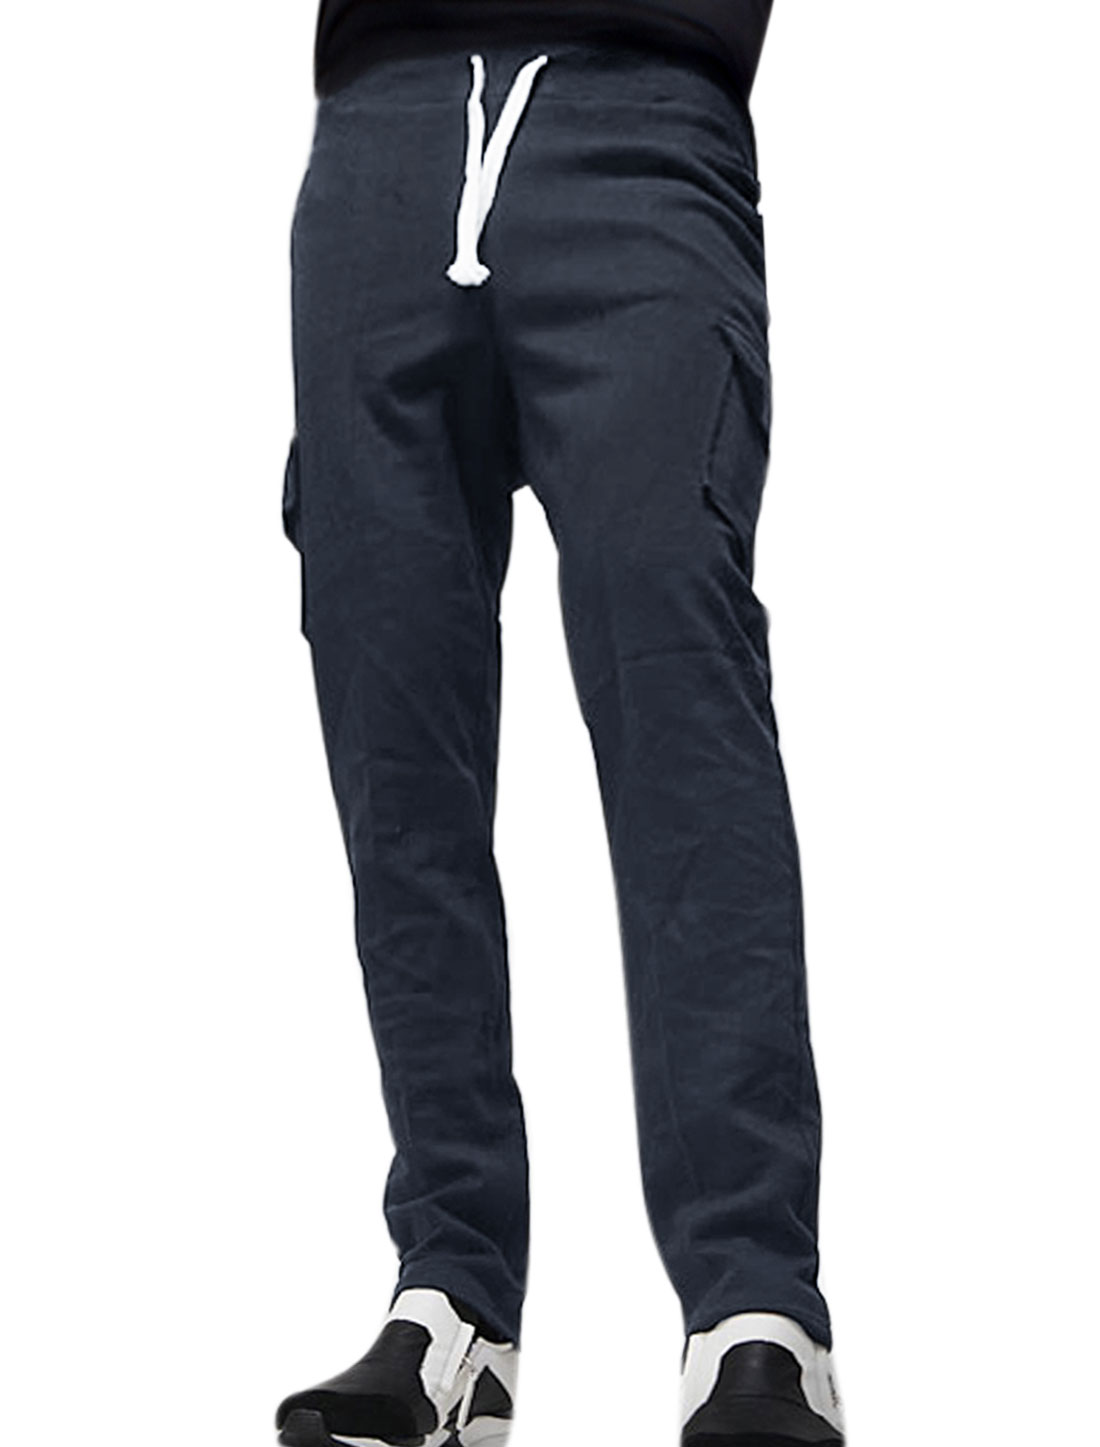 Men Two Flap Pockets Tapered Slim Fit Pants Blue W32